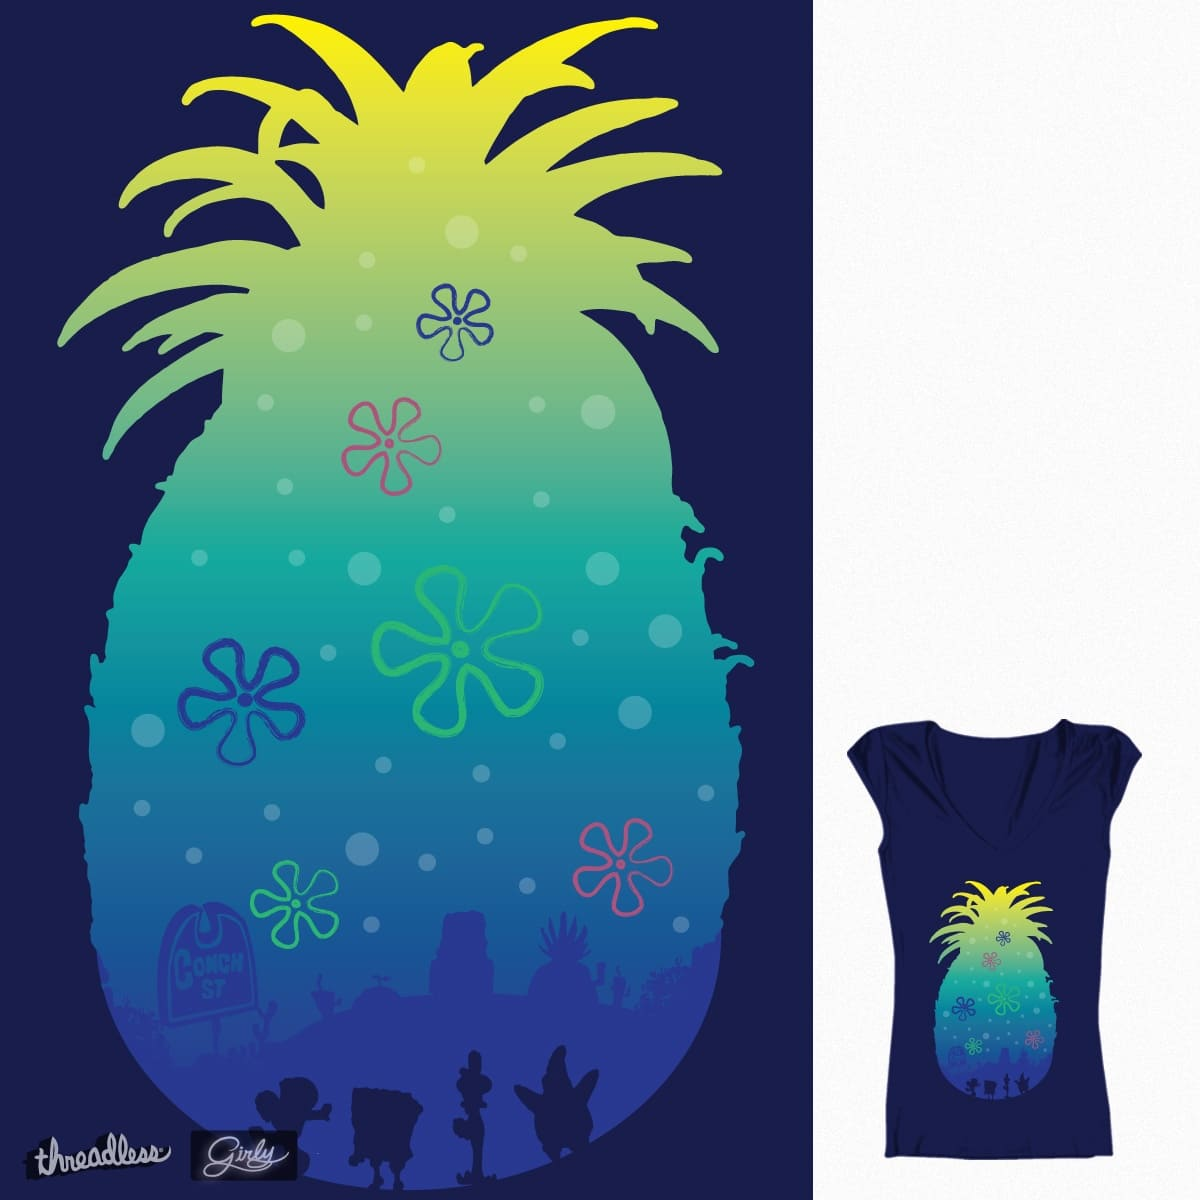 Pineapple Sea by daletheskater on Threadless